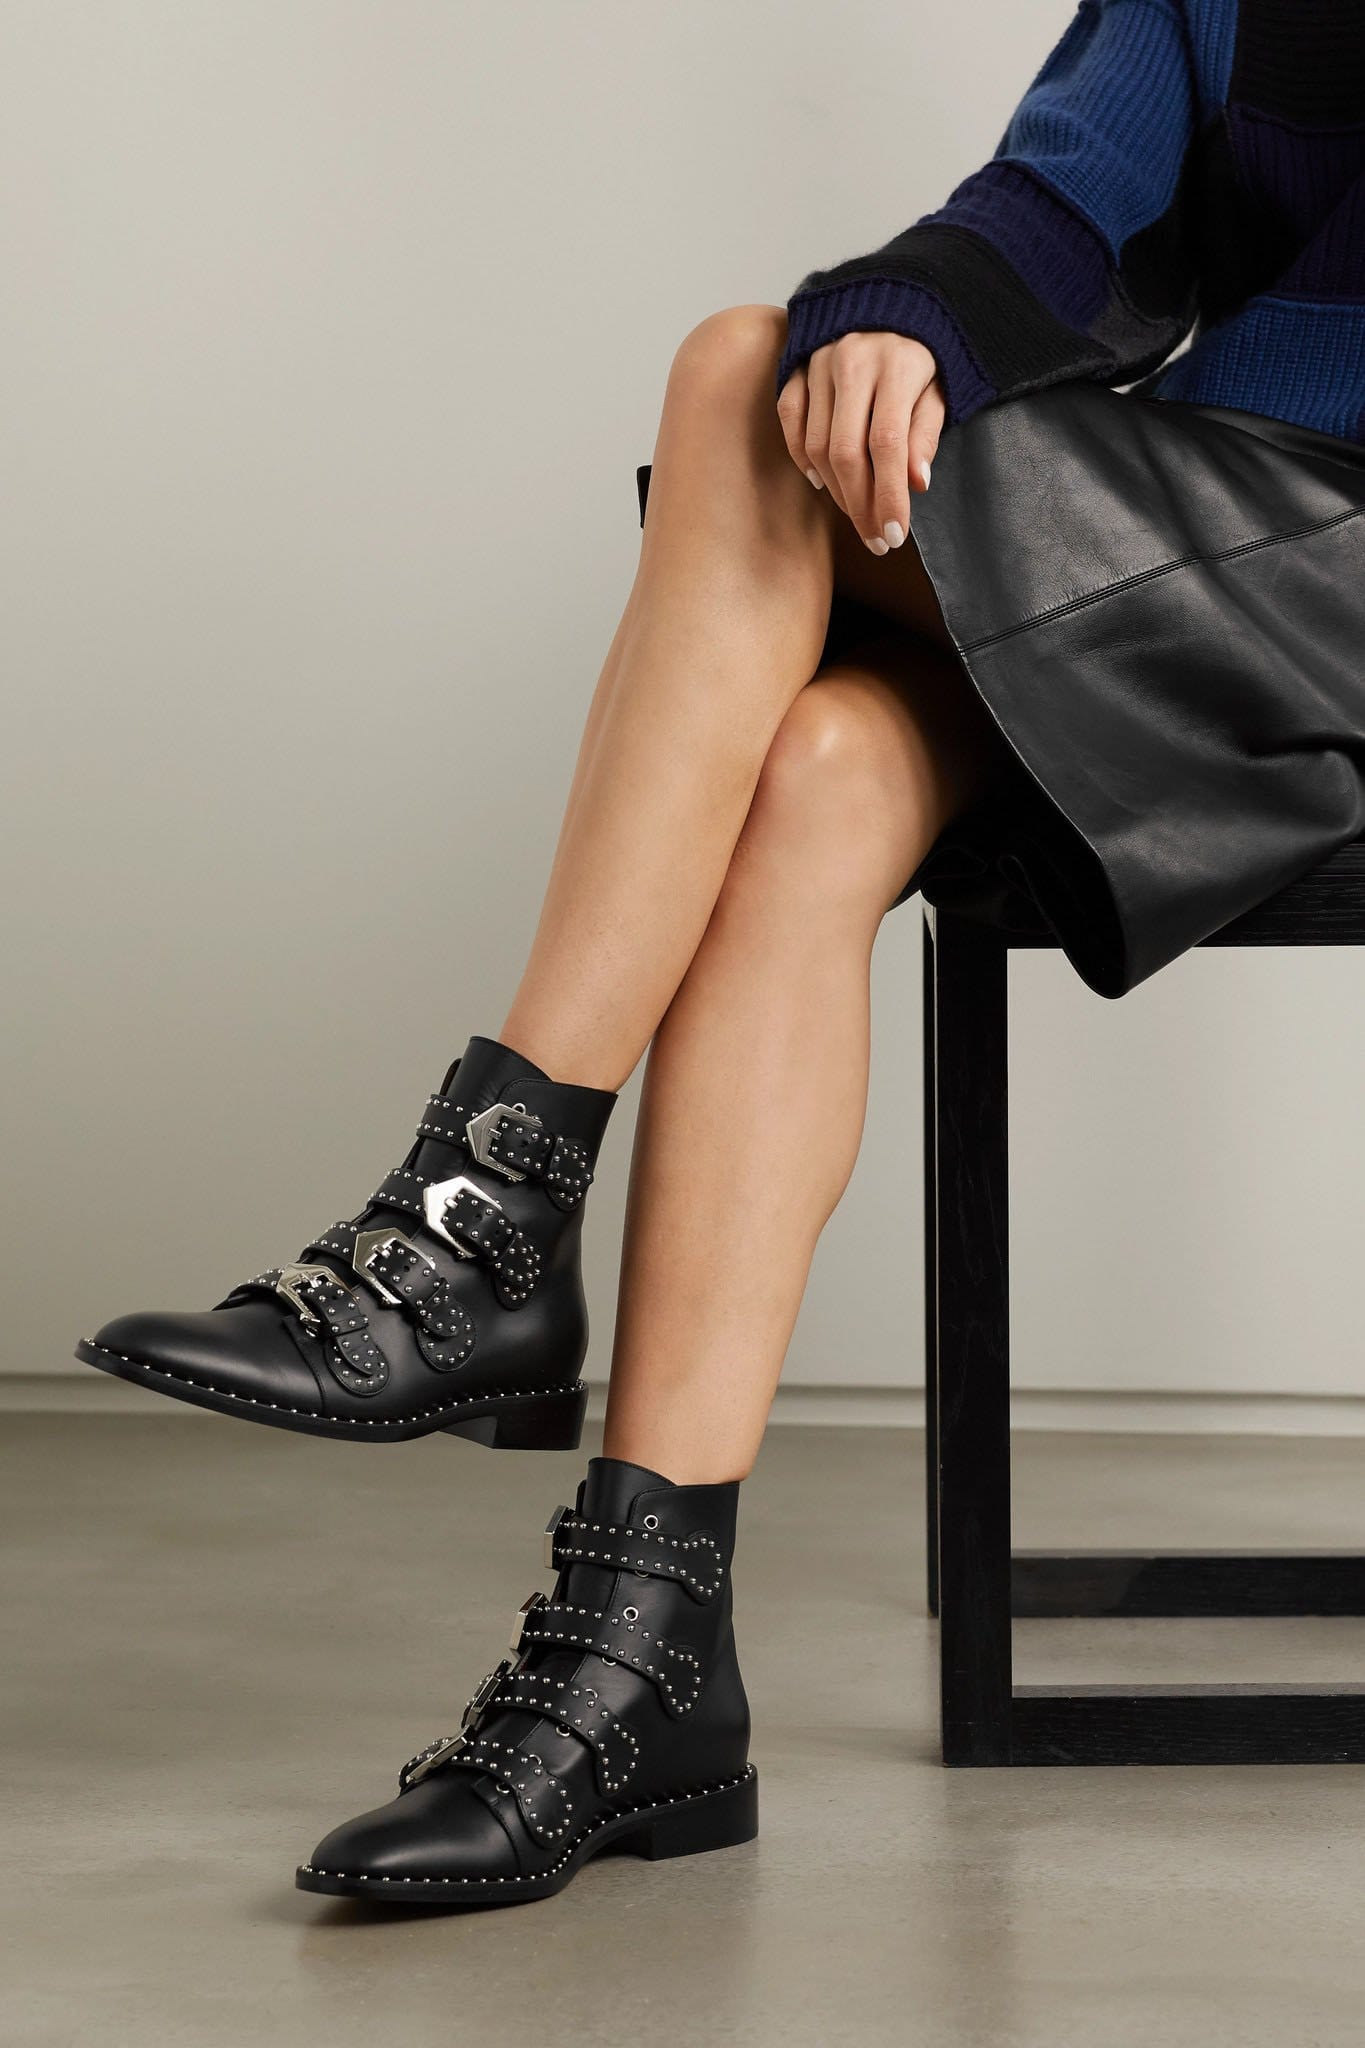 Give your classic leggings some edge with Givenchy studded ankle boots